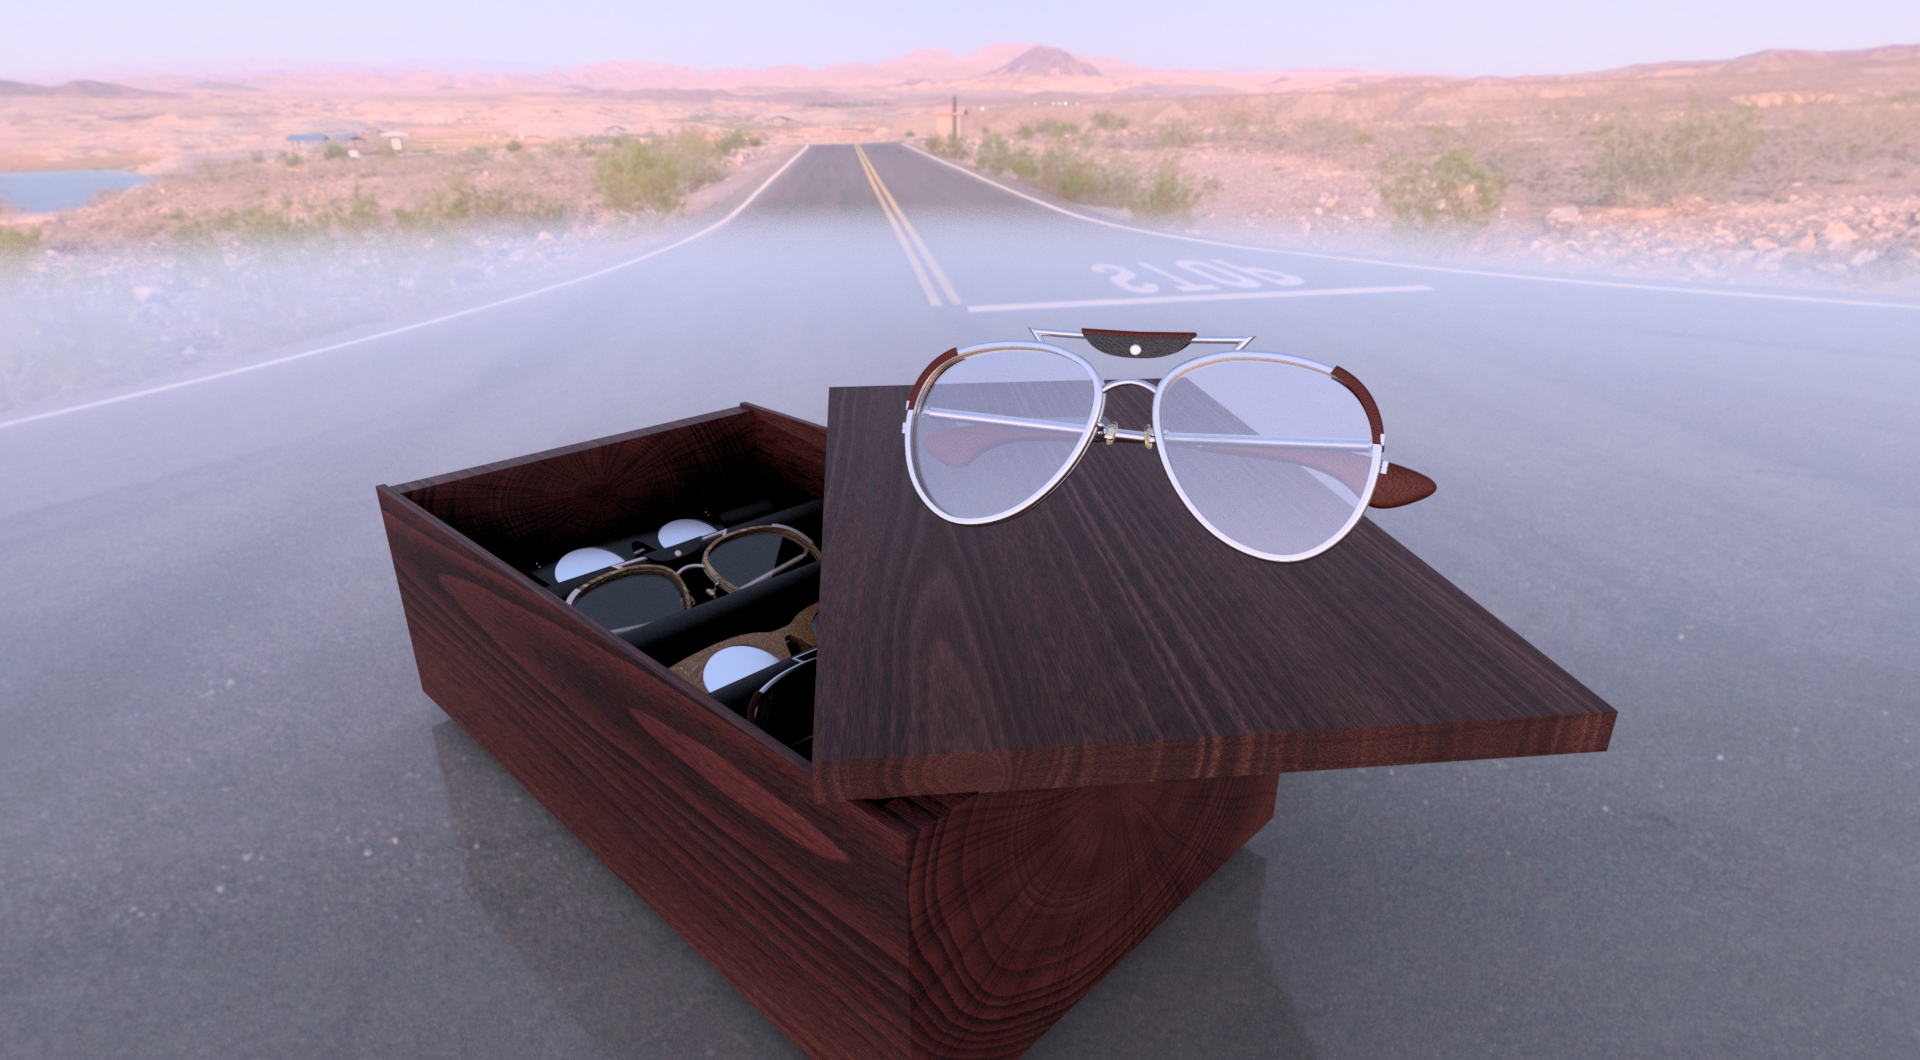 Spectacles Promotional Photo, 2015; Fusion360; Rendering by Louise Larson; Pittsburgh, PA